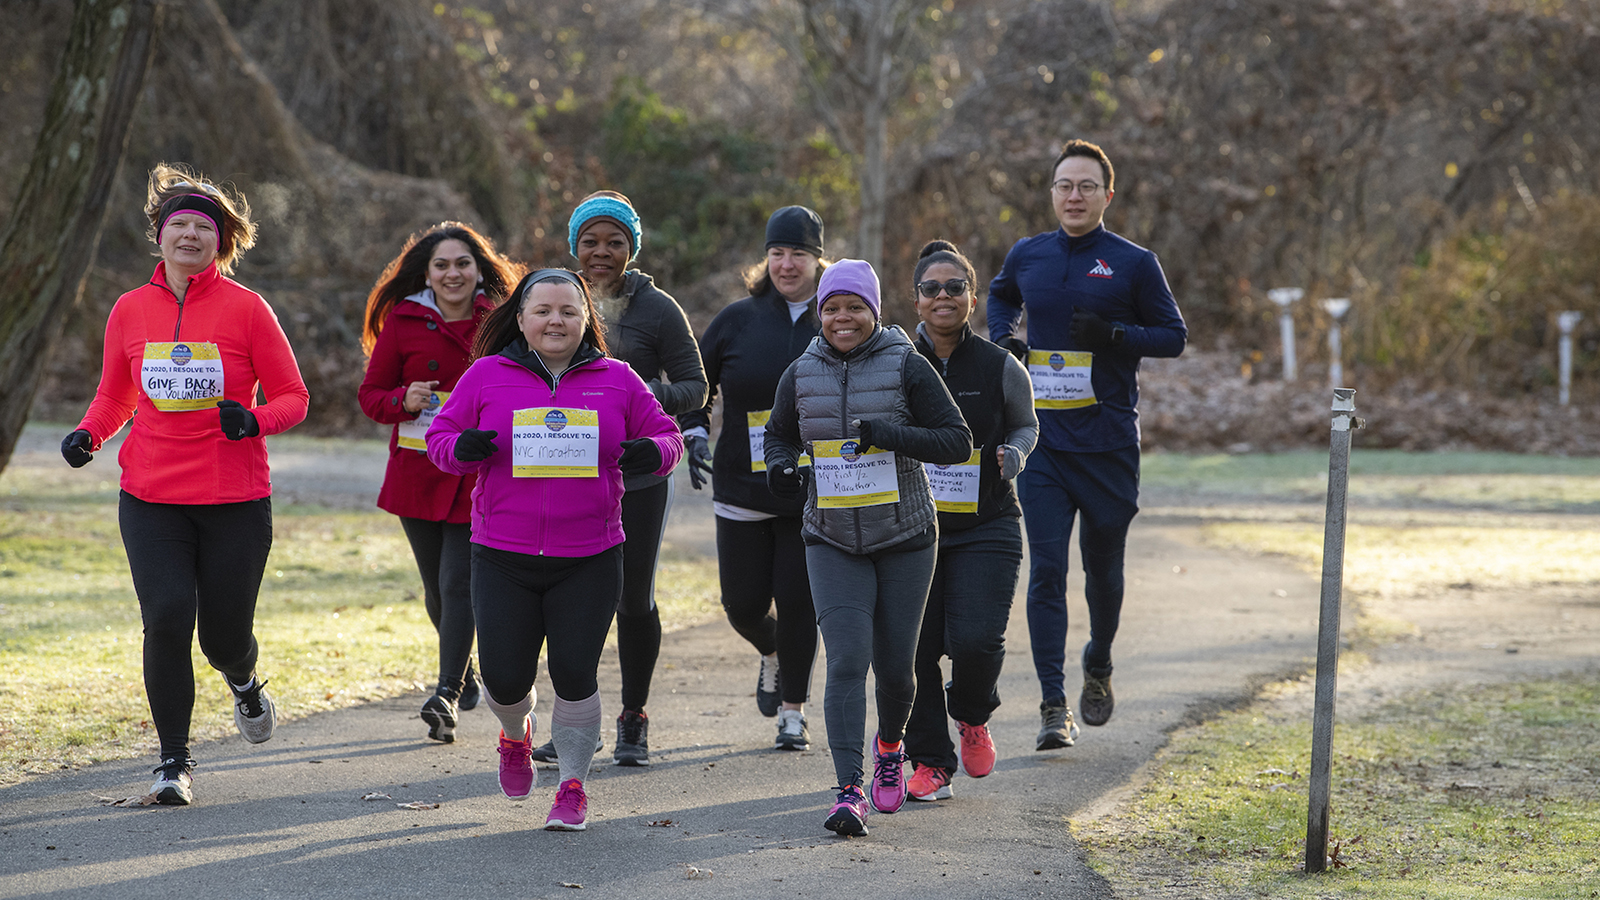 A group of runners in a park for an Open Run